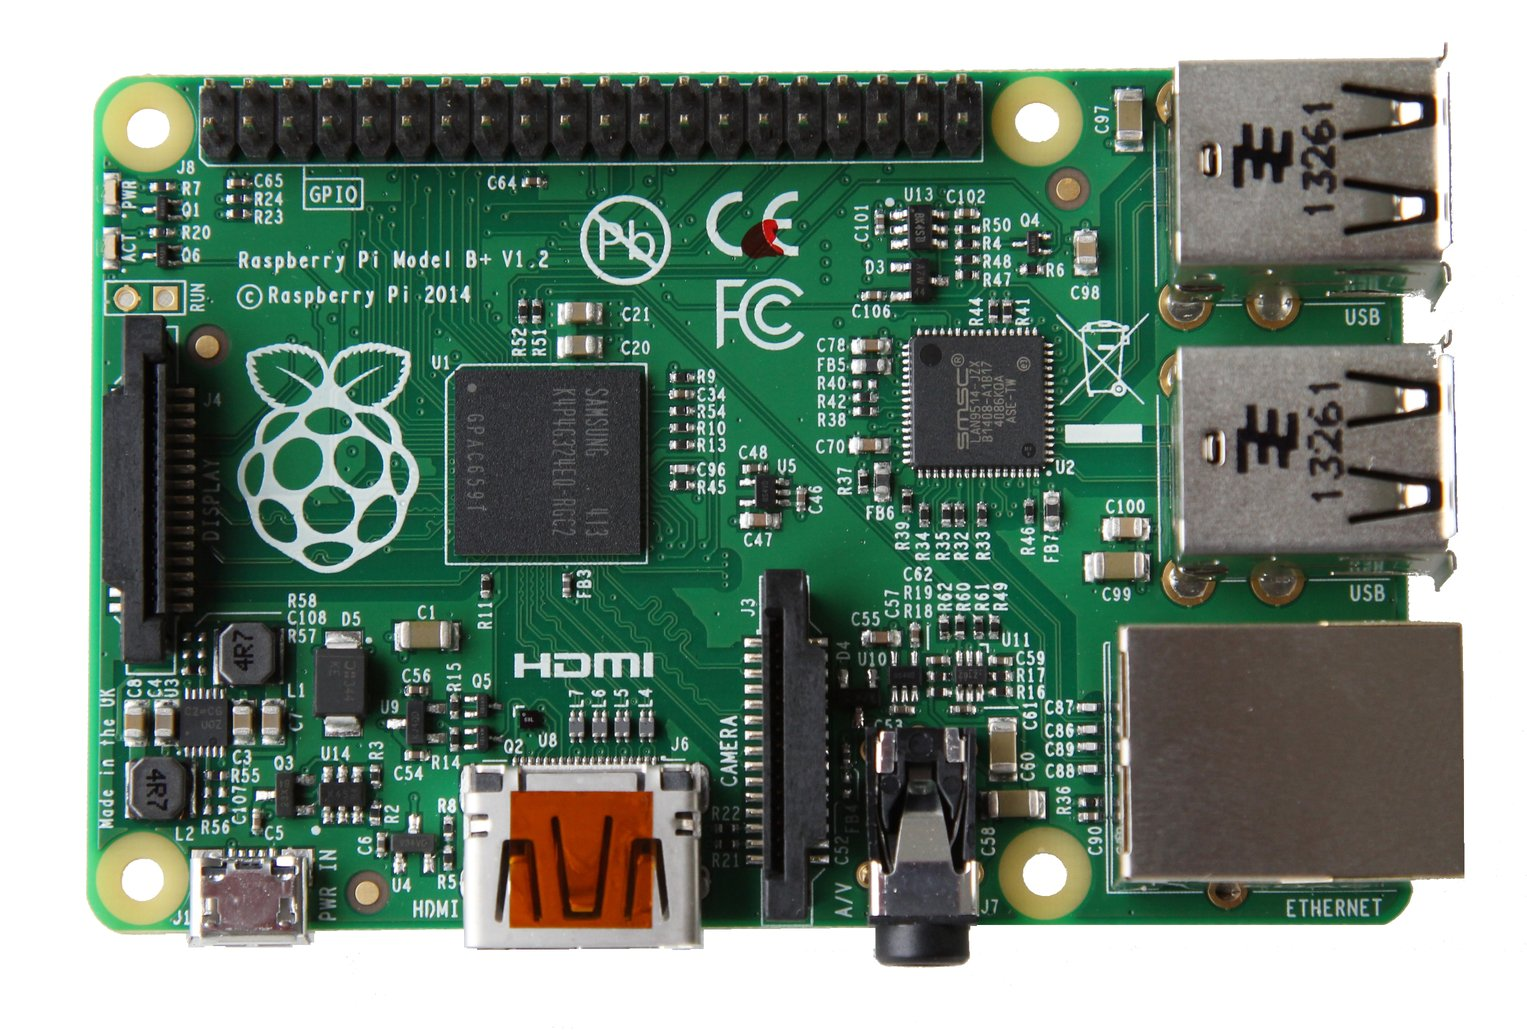 Raspberry Pi 1 Model B+ (B PLUS) 512MB Computer Board